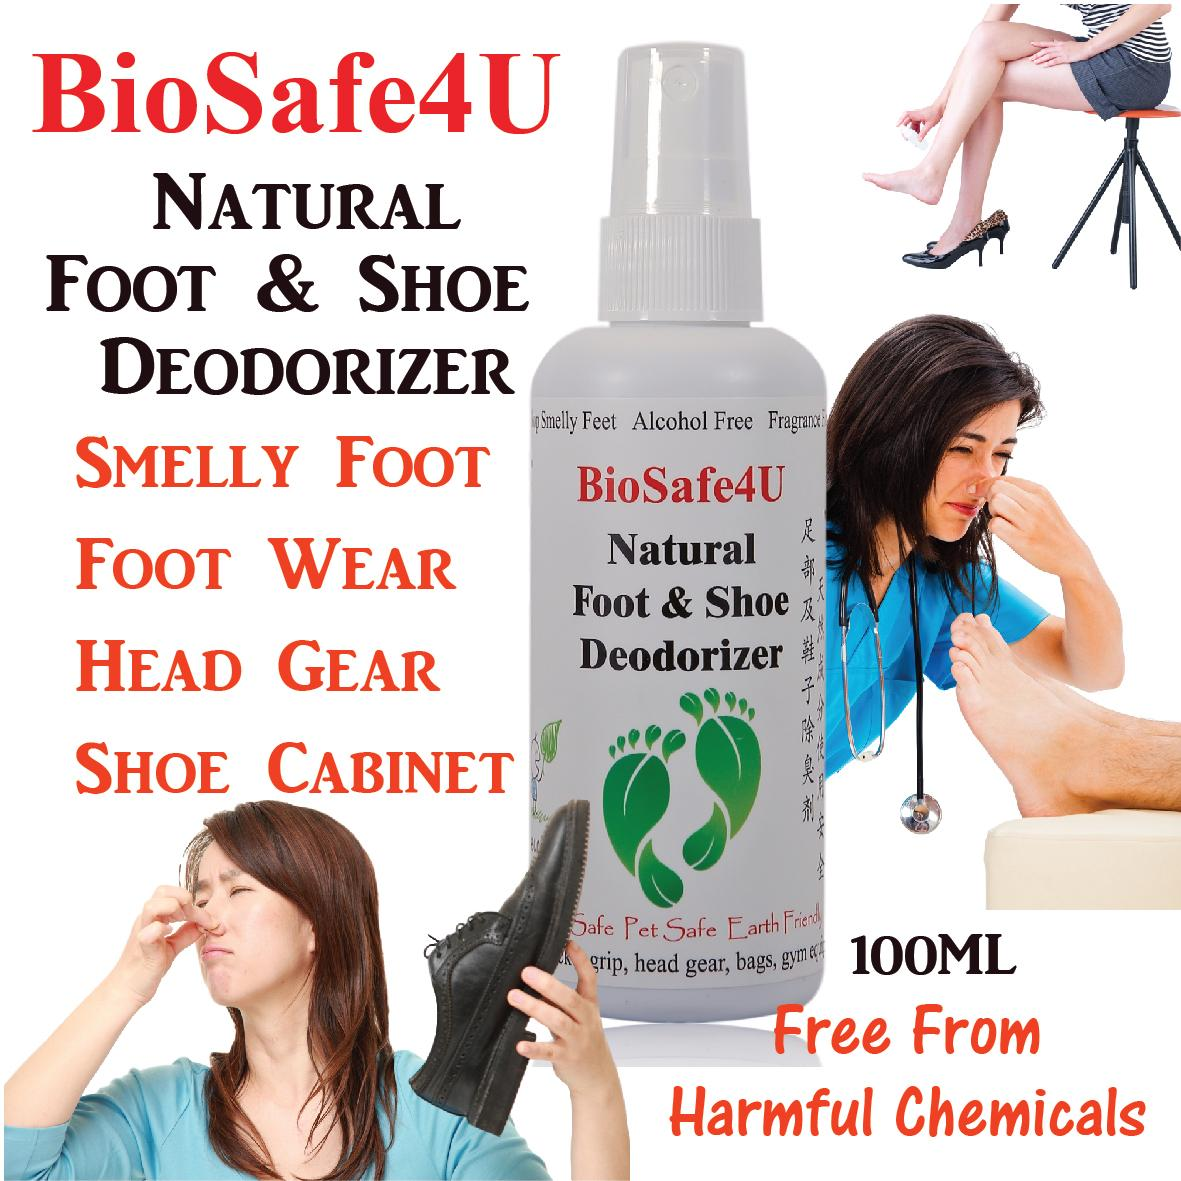 Store Biosafe4U Natural Foot Shoe Deodorizer Biosafe4U On Singapore